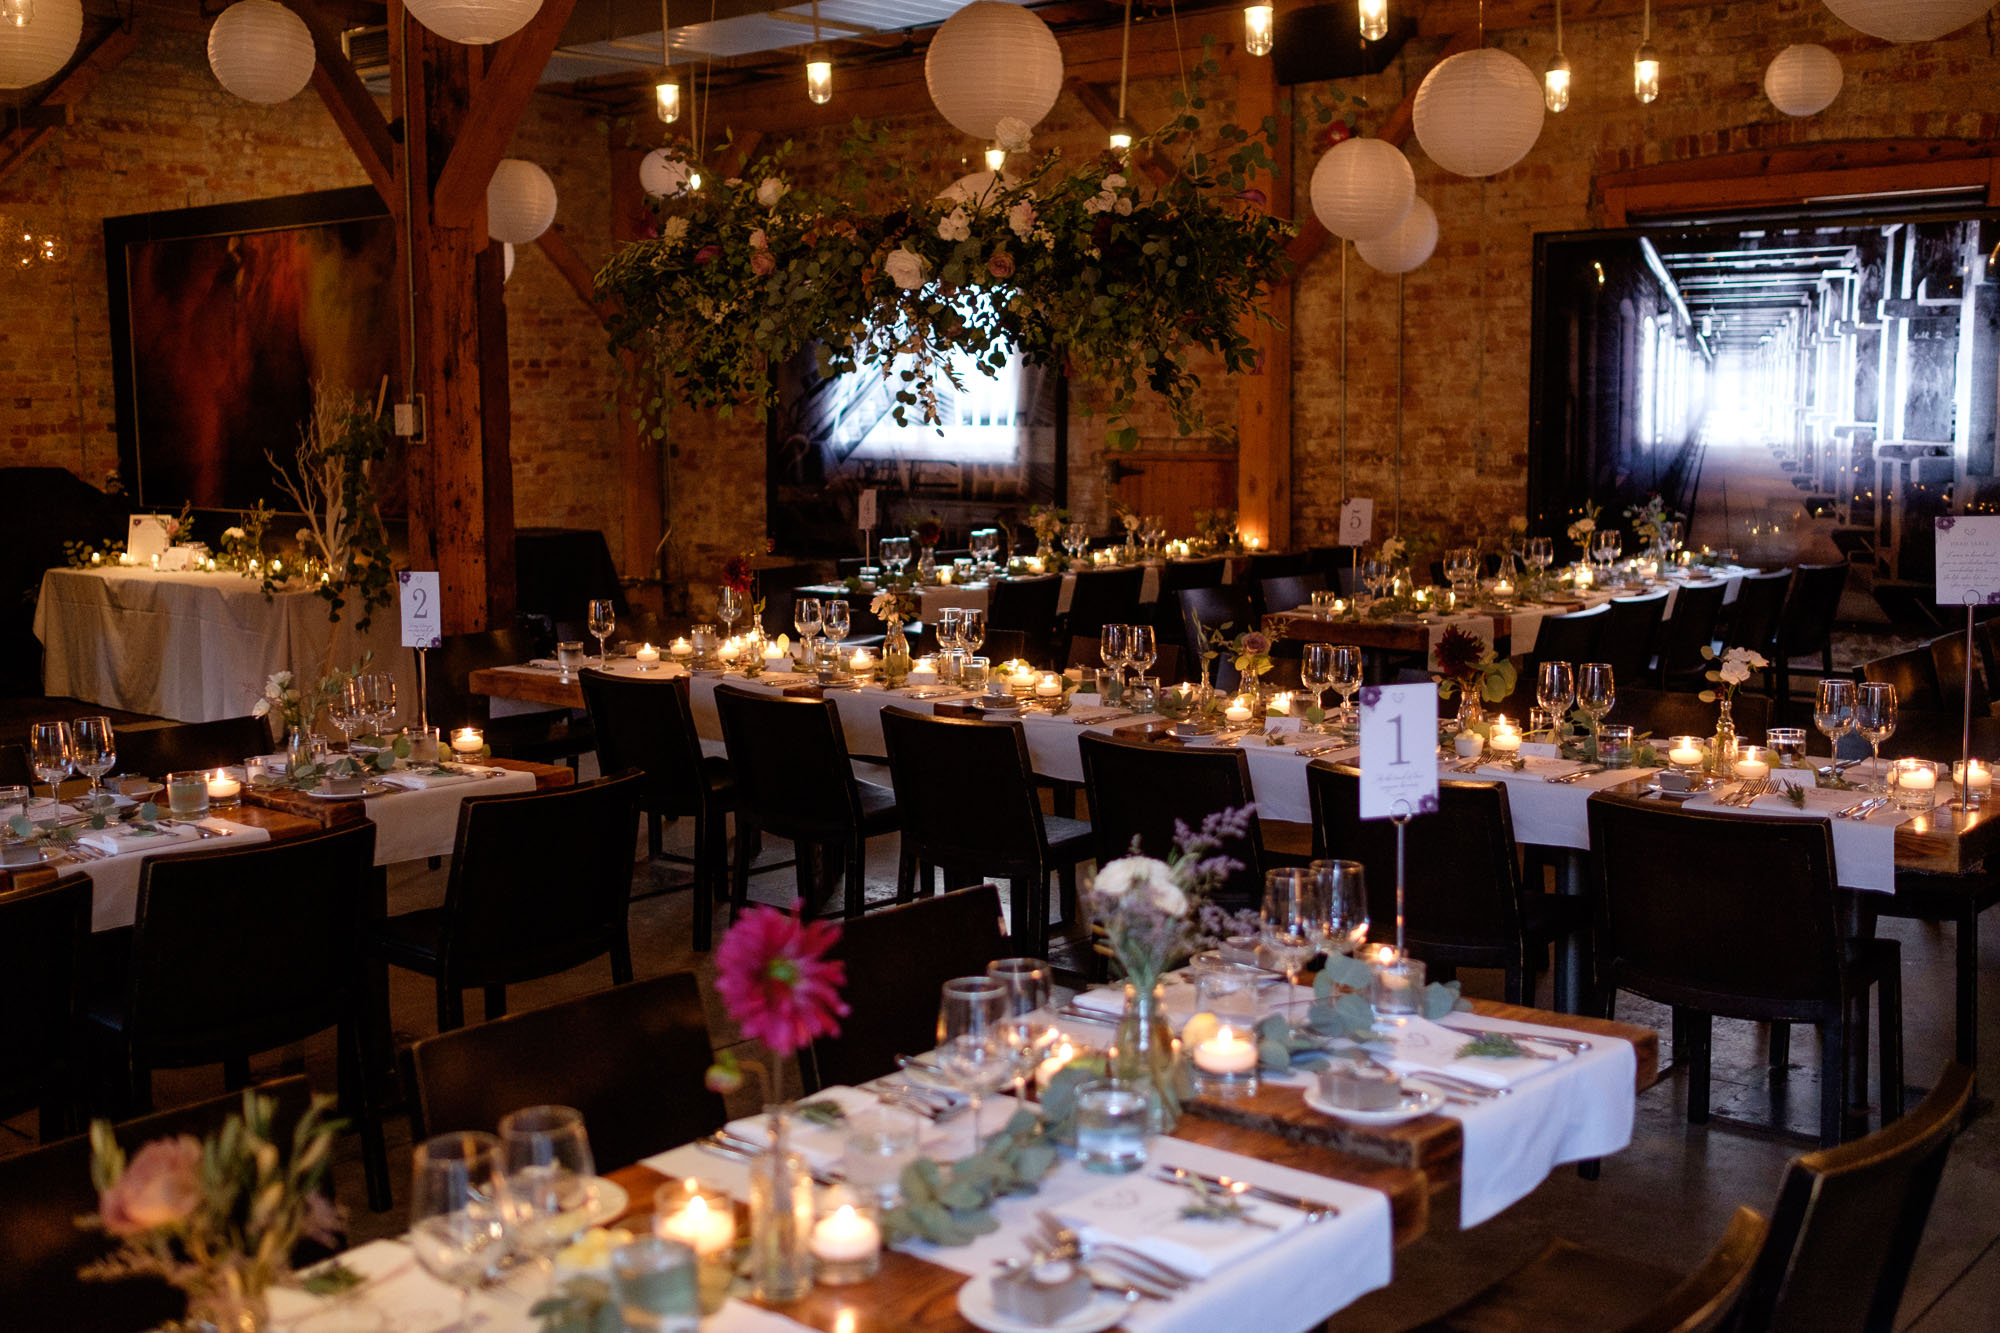 The wedding reception room set up at Archeo in the Distillery District for Cindy + Enrico's wedding.